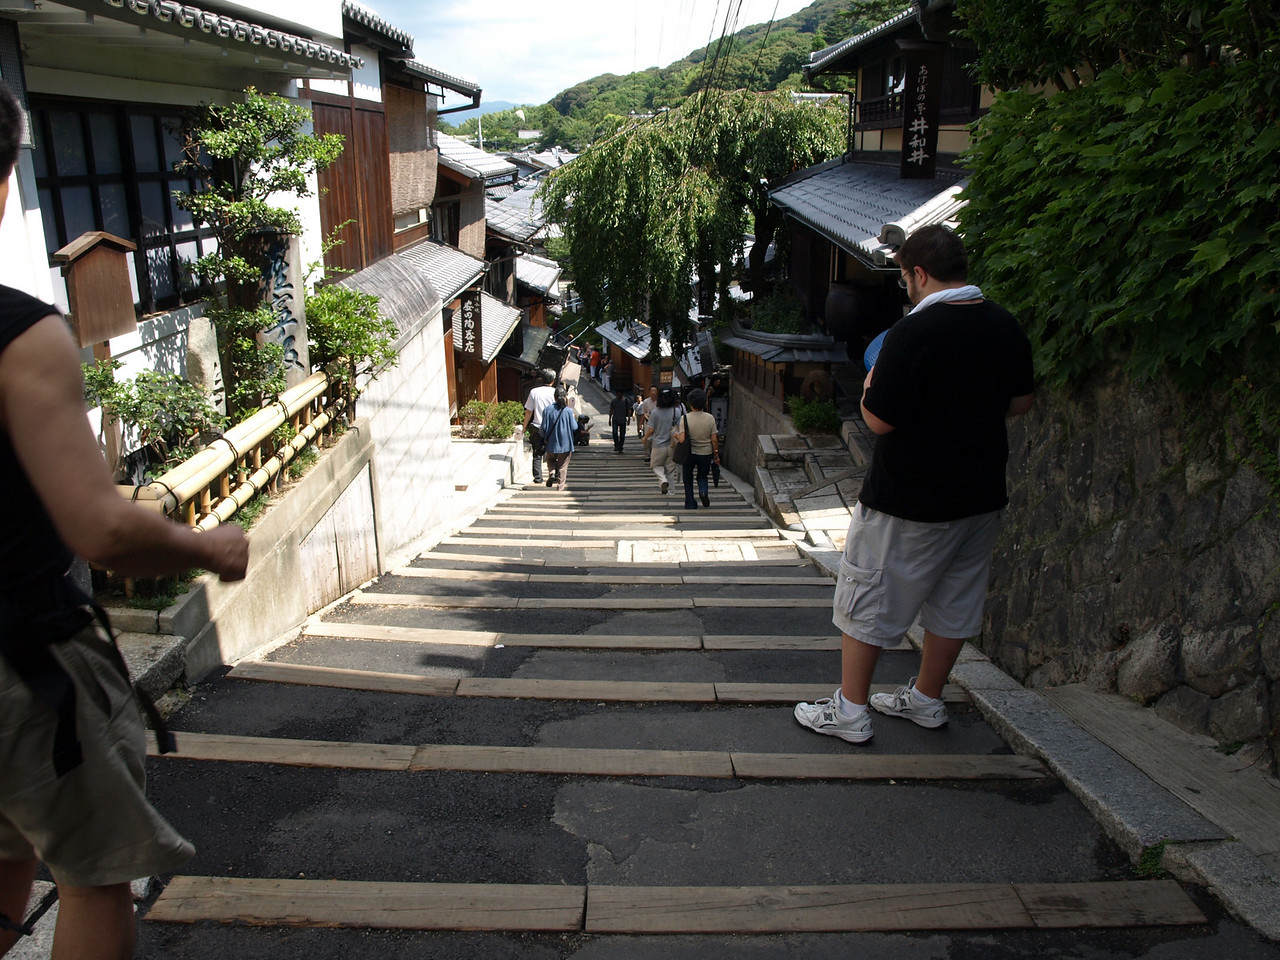 Per our printed guide, we head down the Sannenzaka Staircase, the three year stairs, so named because if you fall down them, you will die within three years.<br /> <br /> Was there really a spice shop at the turn? I forgot to look, but the stairs were unmistakable.